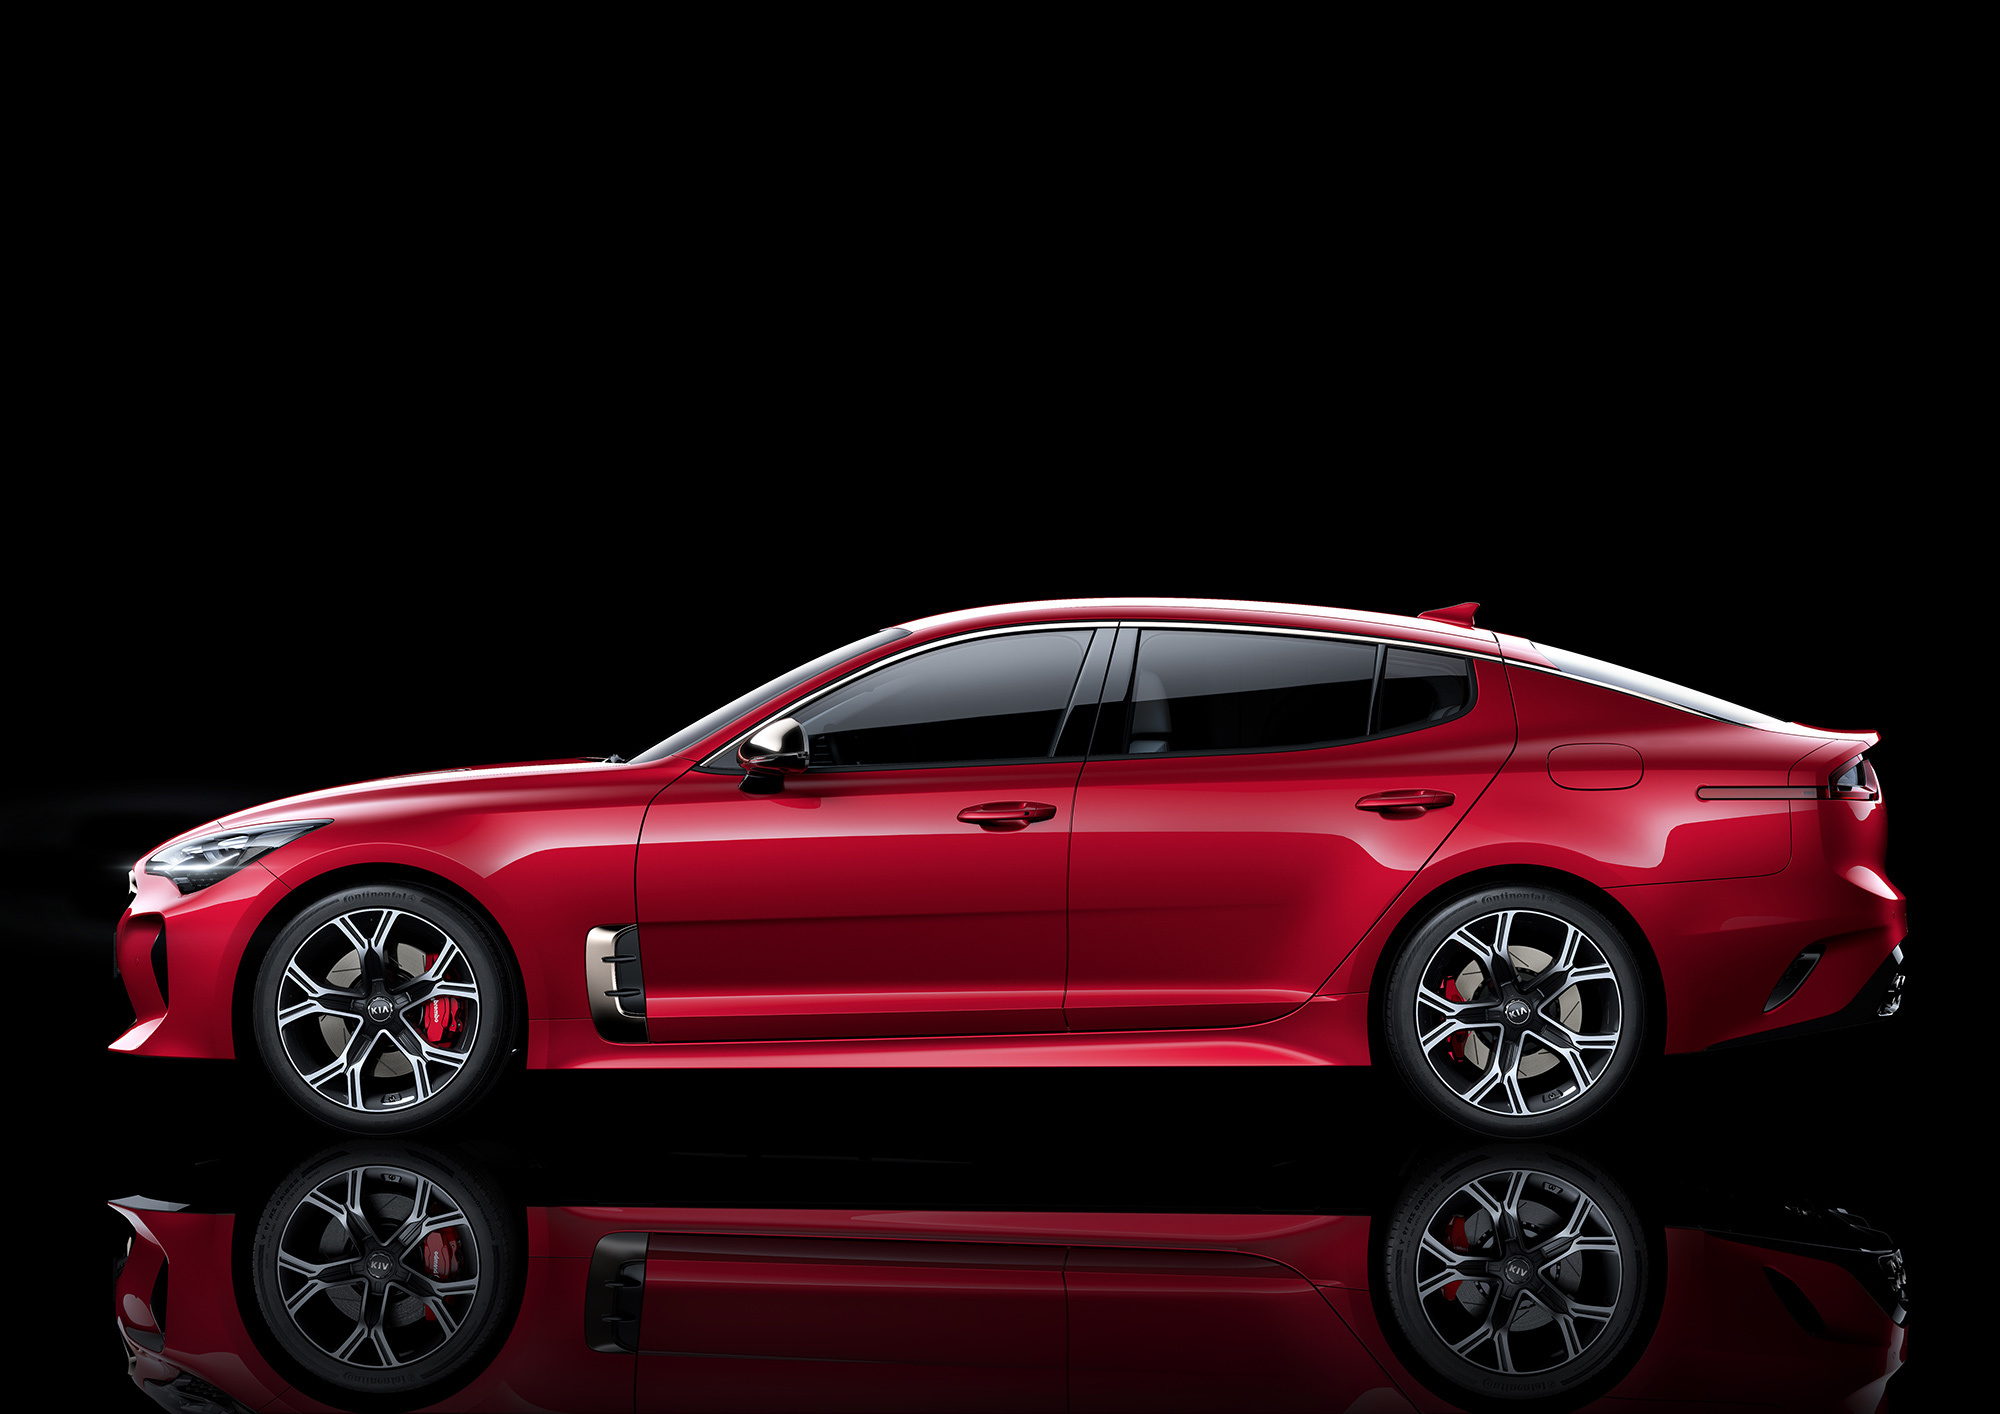 kia stinger wallpapers images photos pictures backgrounds. Black Bedroom Furniture Sets. Home Design Ideas